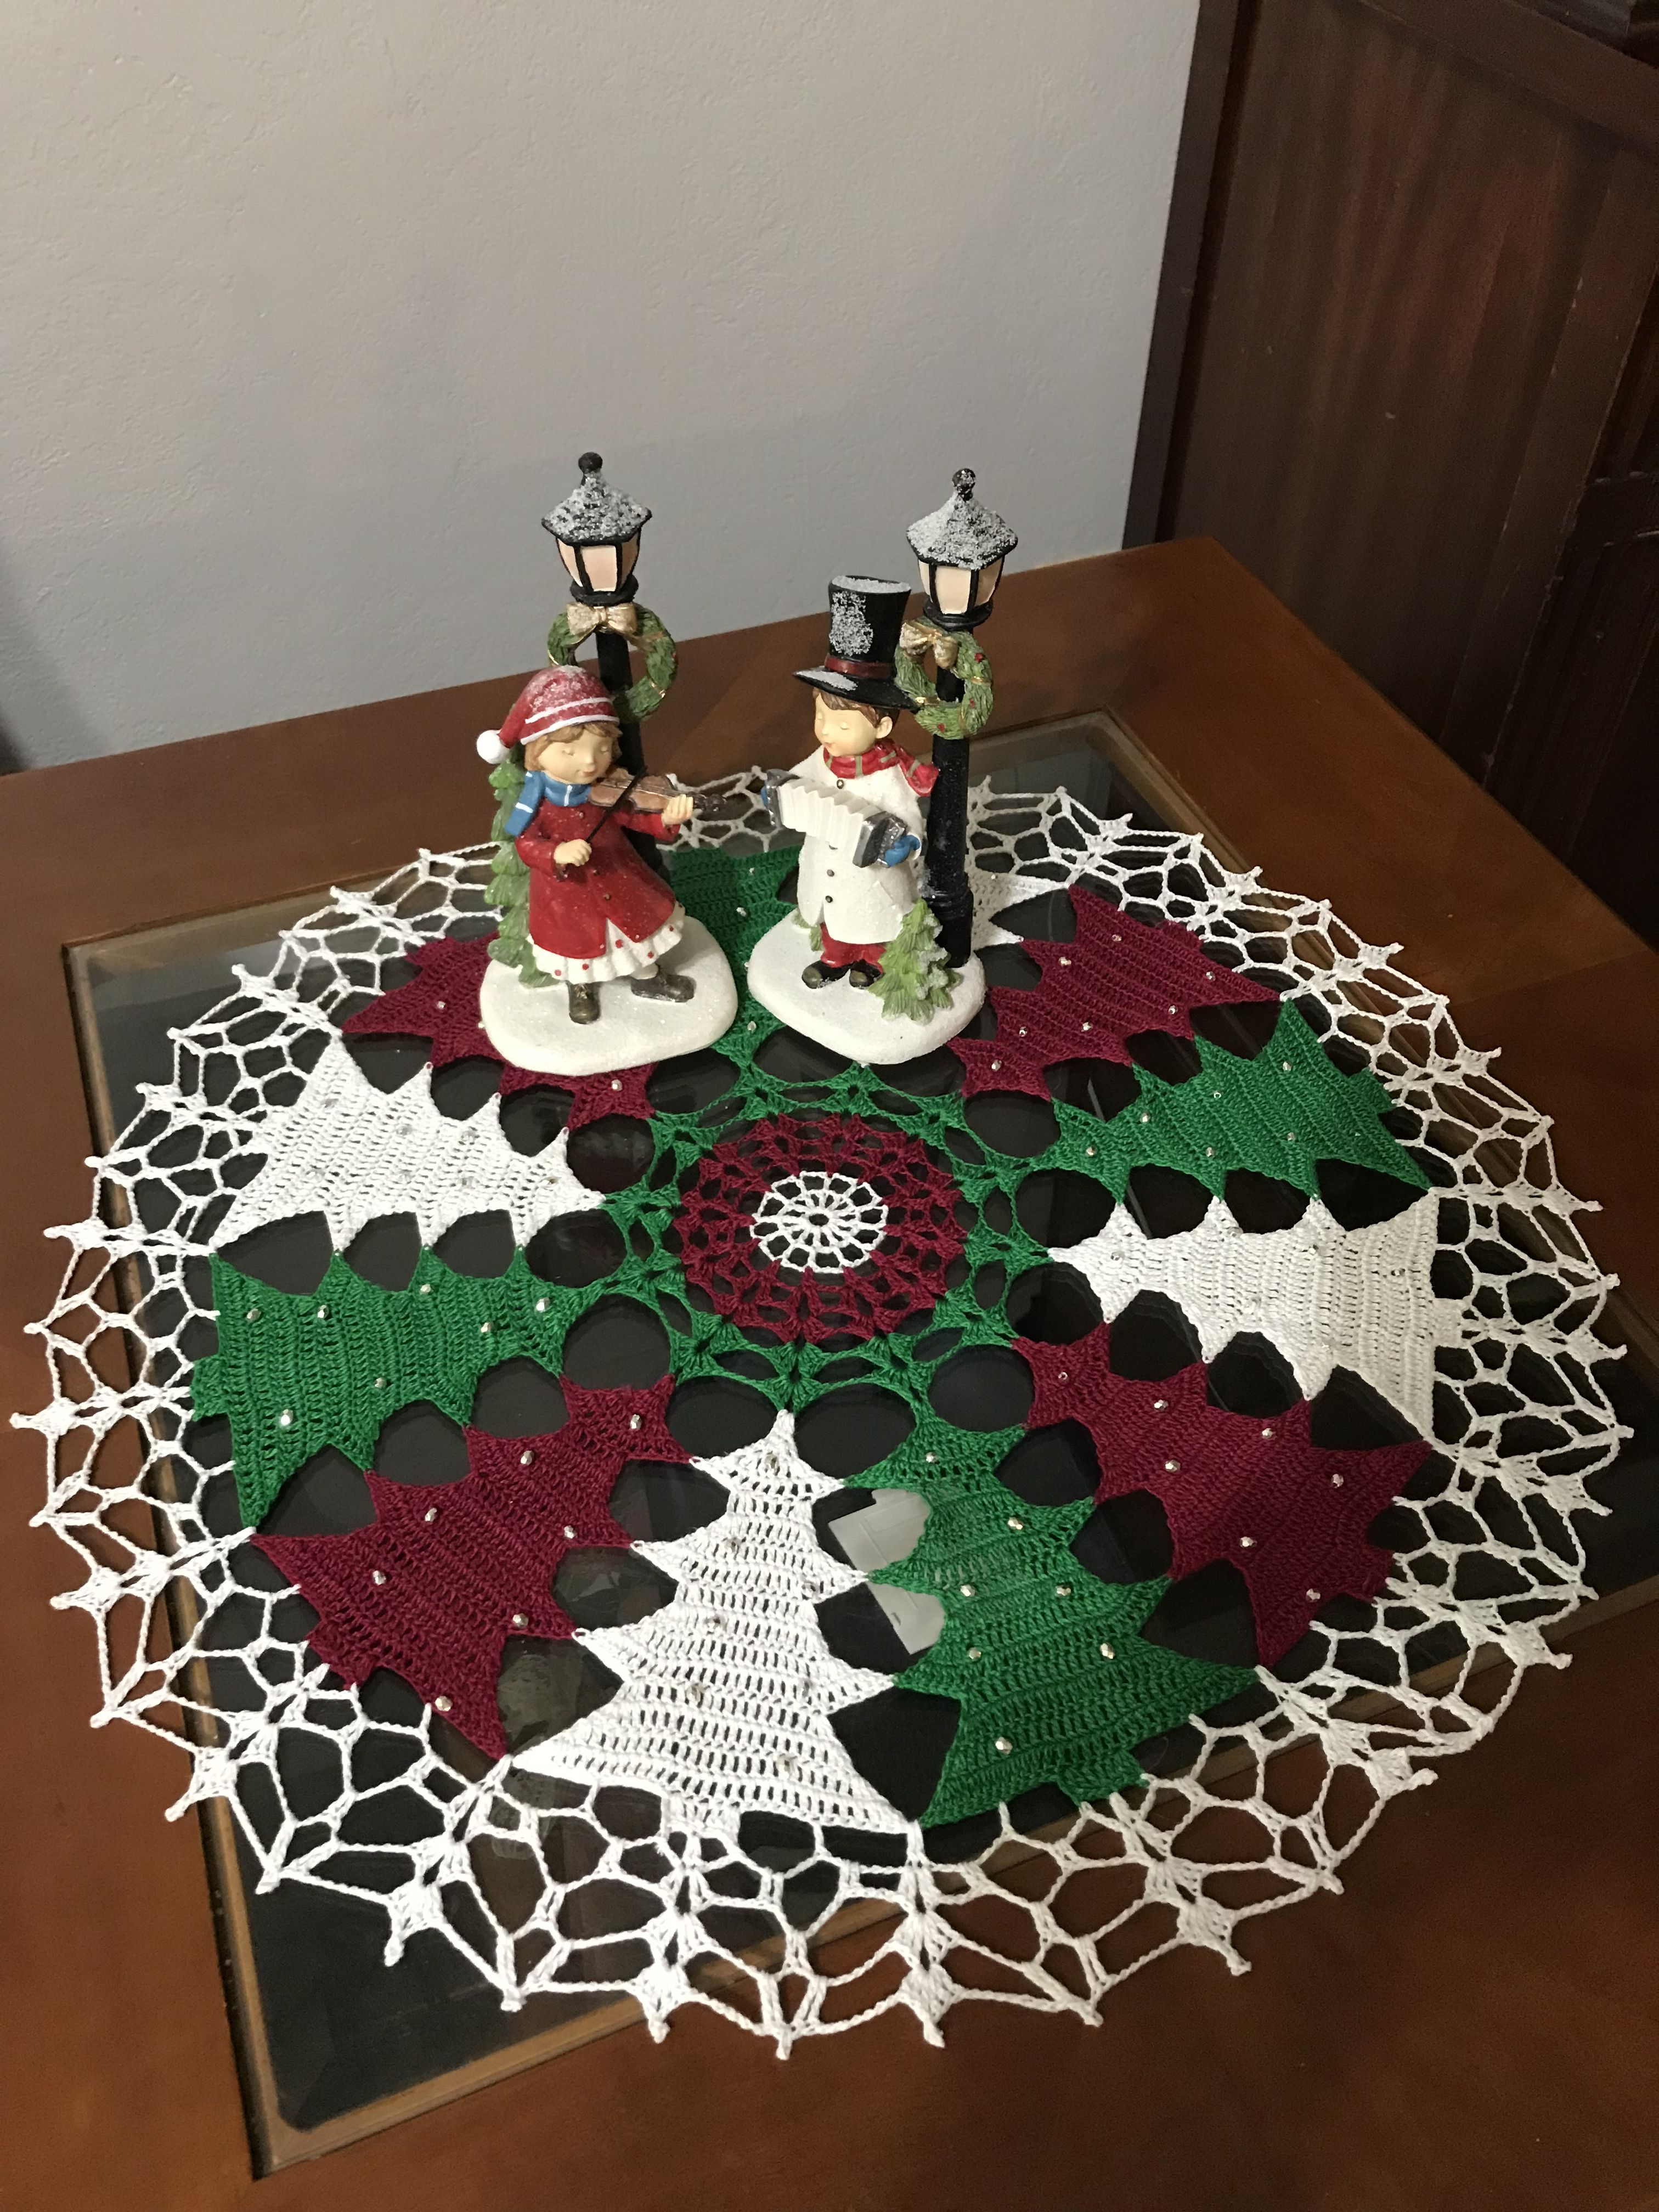 Pin By Clara Razuri On Crochet Crochet Christmas Trees Pattern Crochet Christmas Ornaments Crochet Christmas Trees